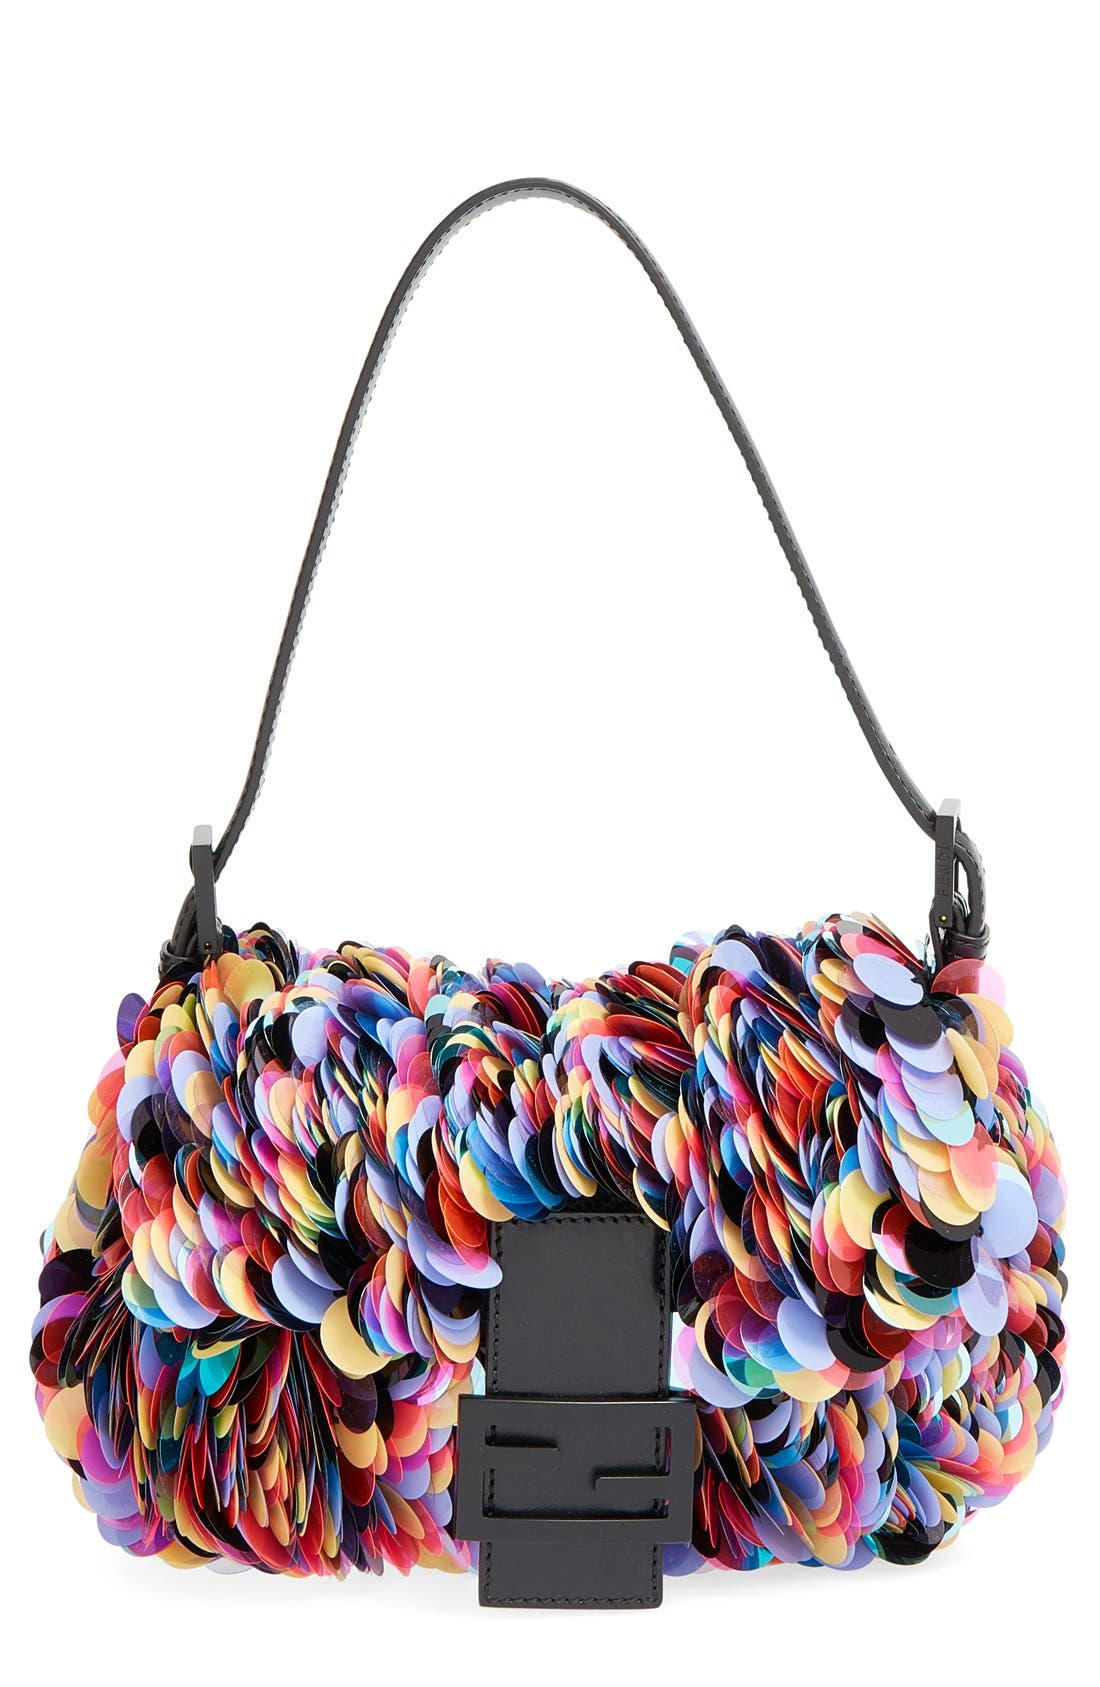 Main Image - Fendi Paillette Baguette Shoulder Bag